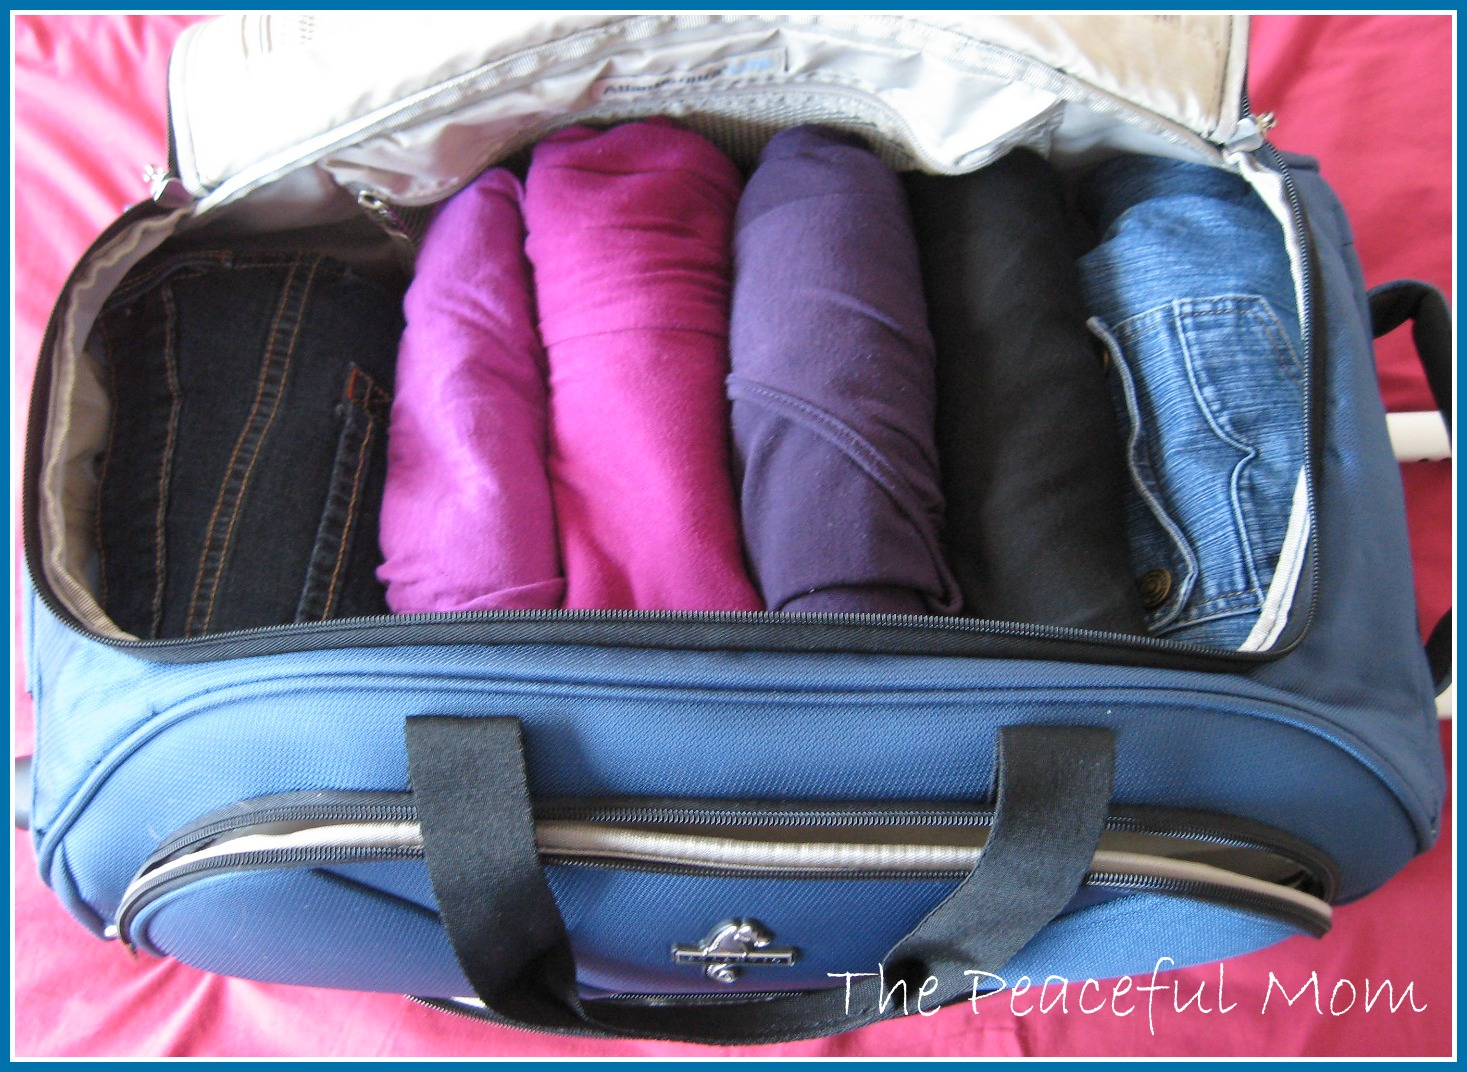 Ng Tips How To Pack 5 Days Of Clothes In One Carry On Bag The Peaceful Mom